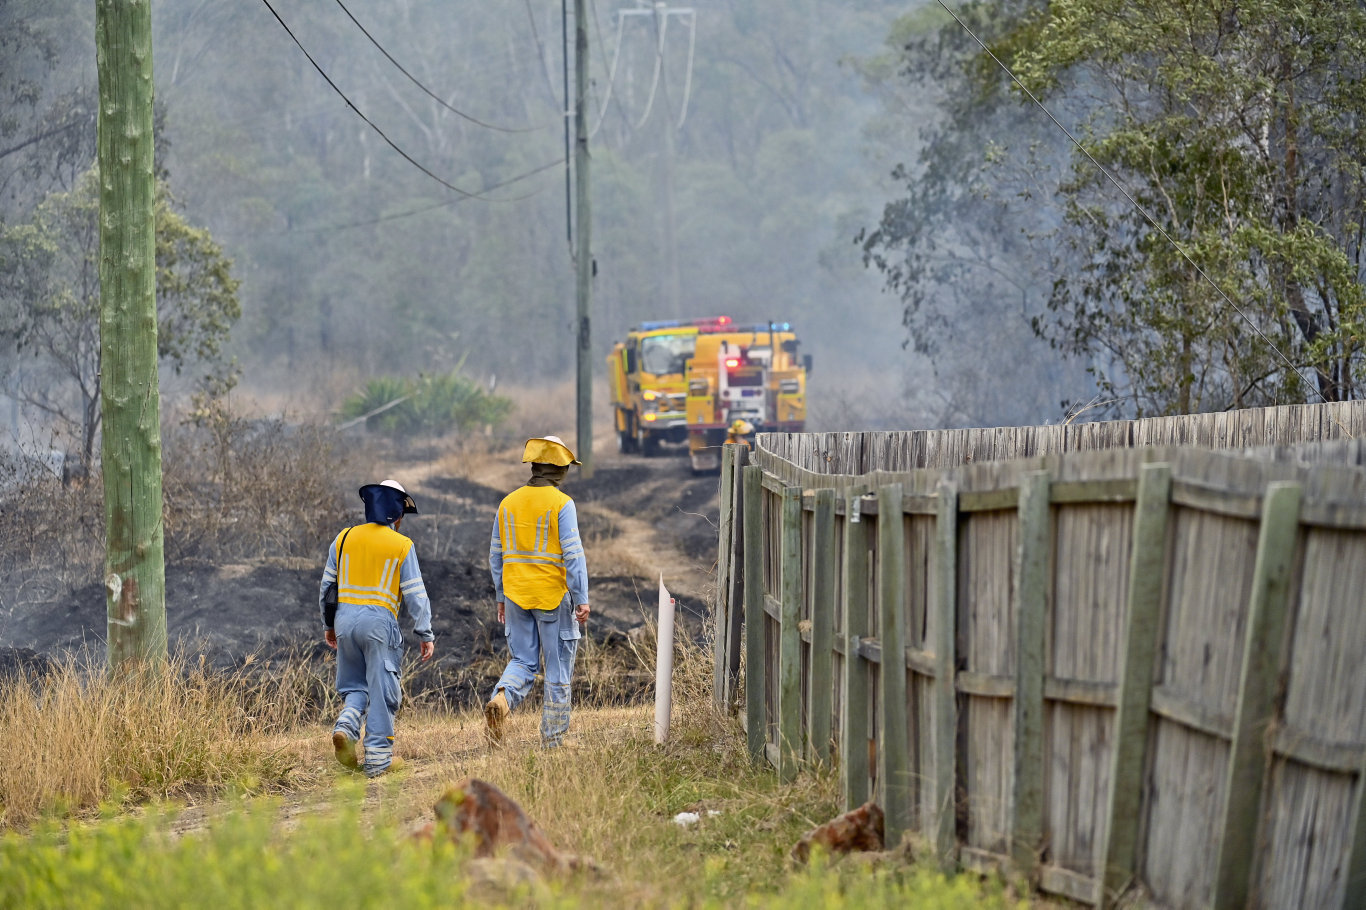 A fast-moving fire was travelling in a south-westerly direction from Rice Rd and Halletts Road towards Swanbank.